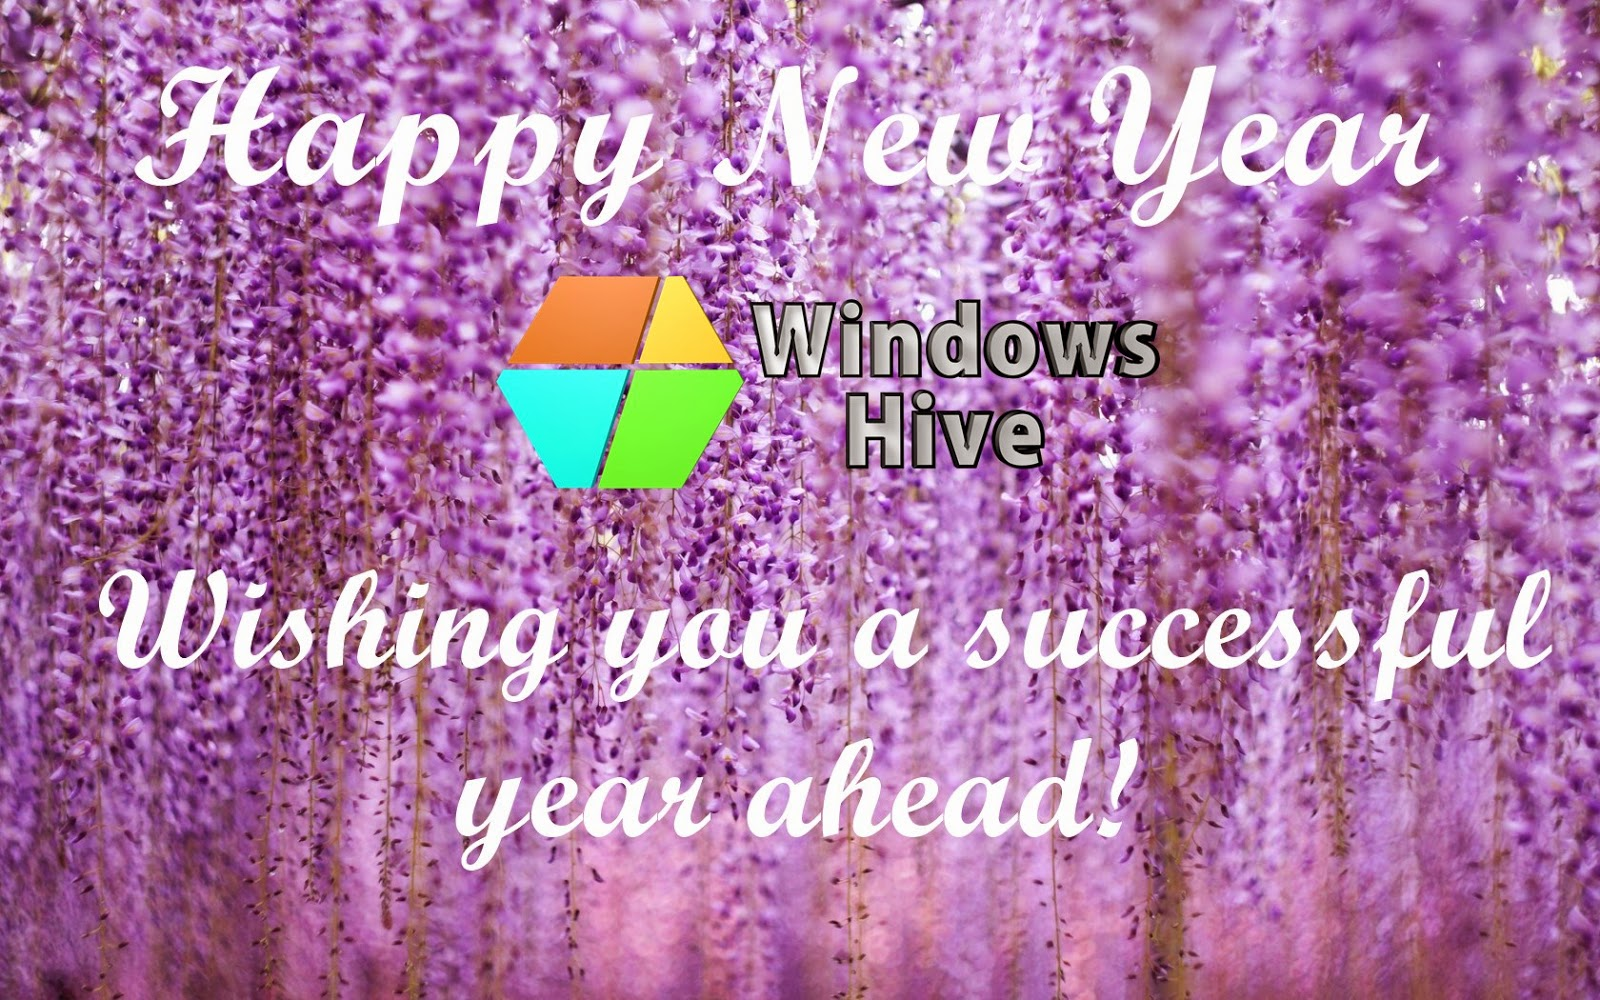 Happy new year from.windows hive